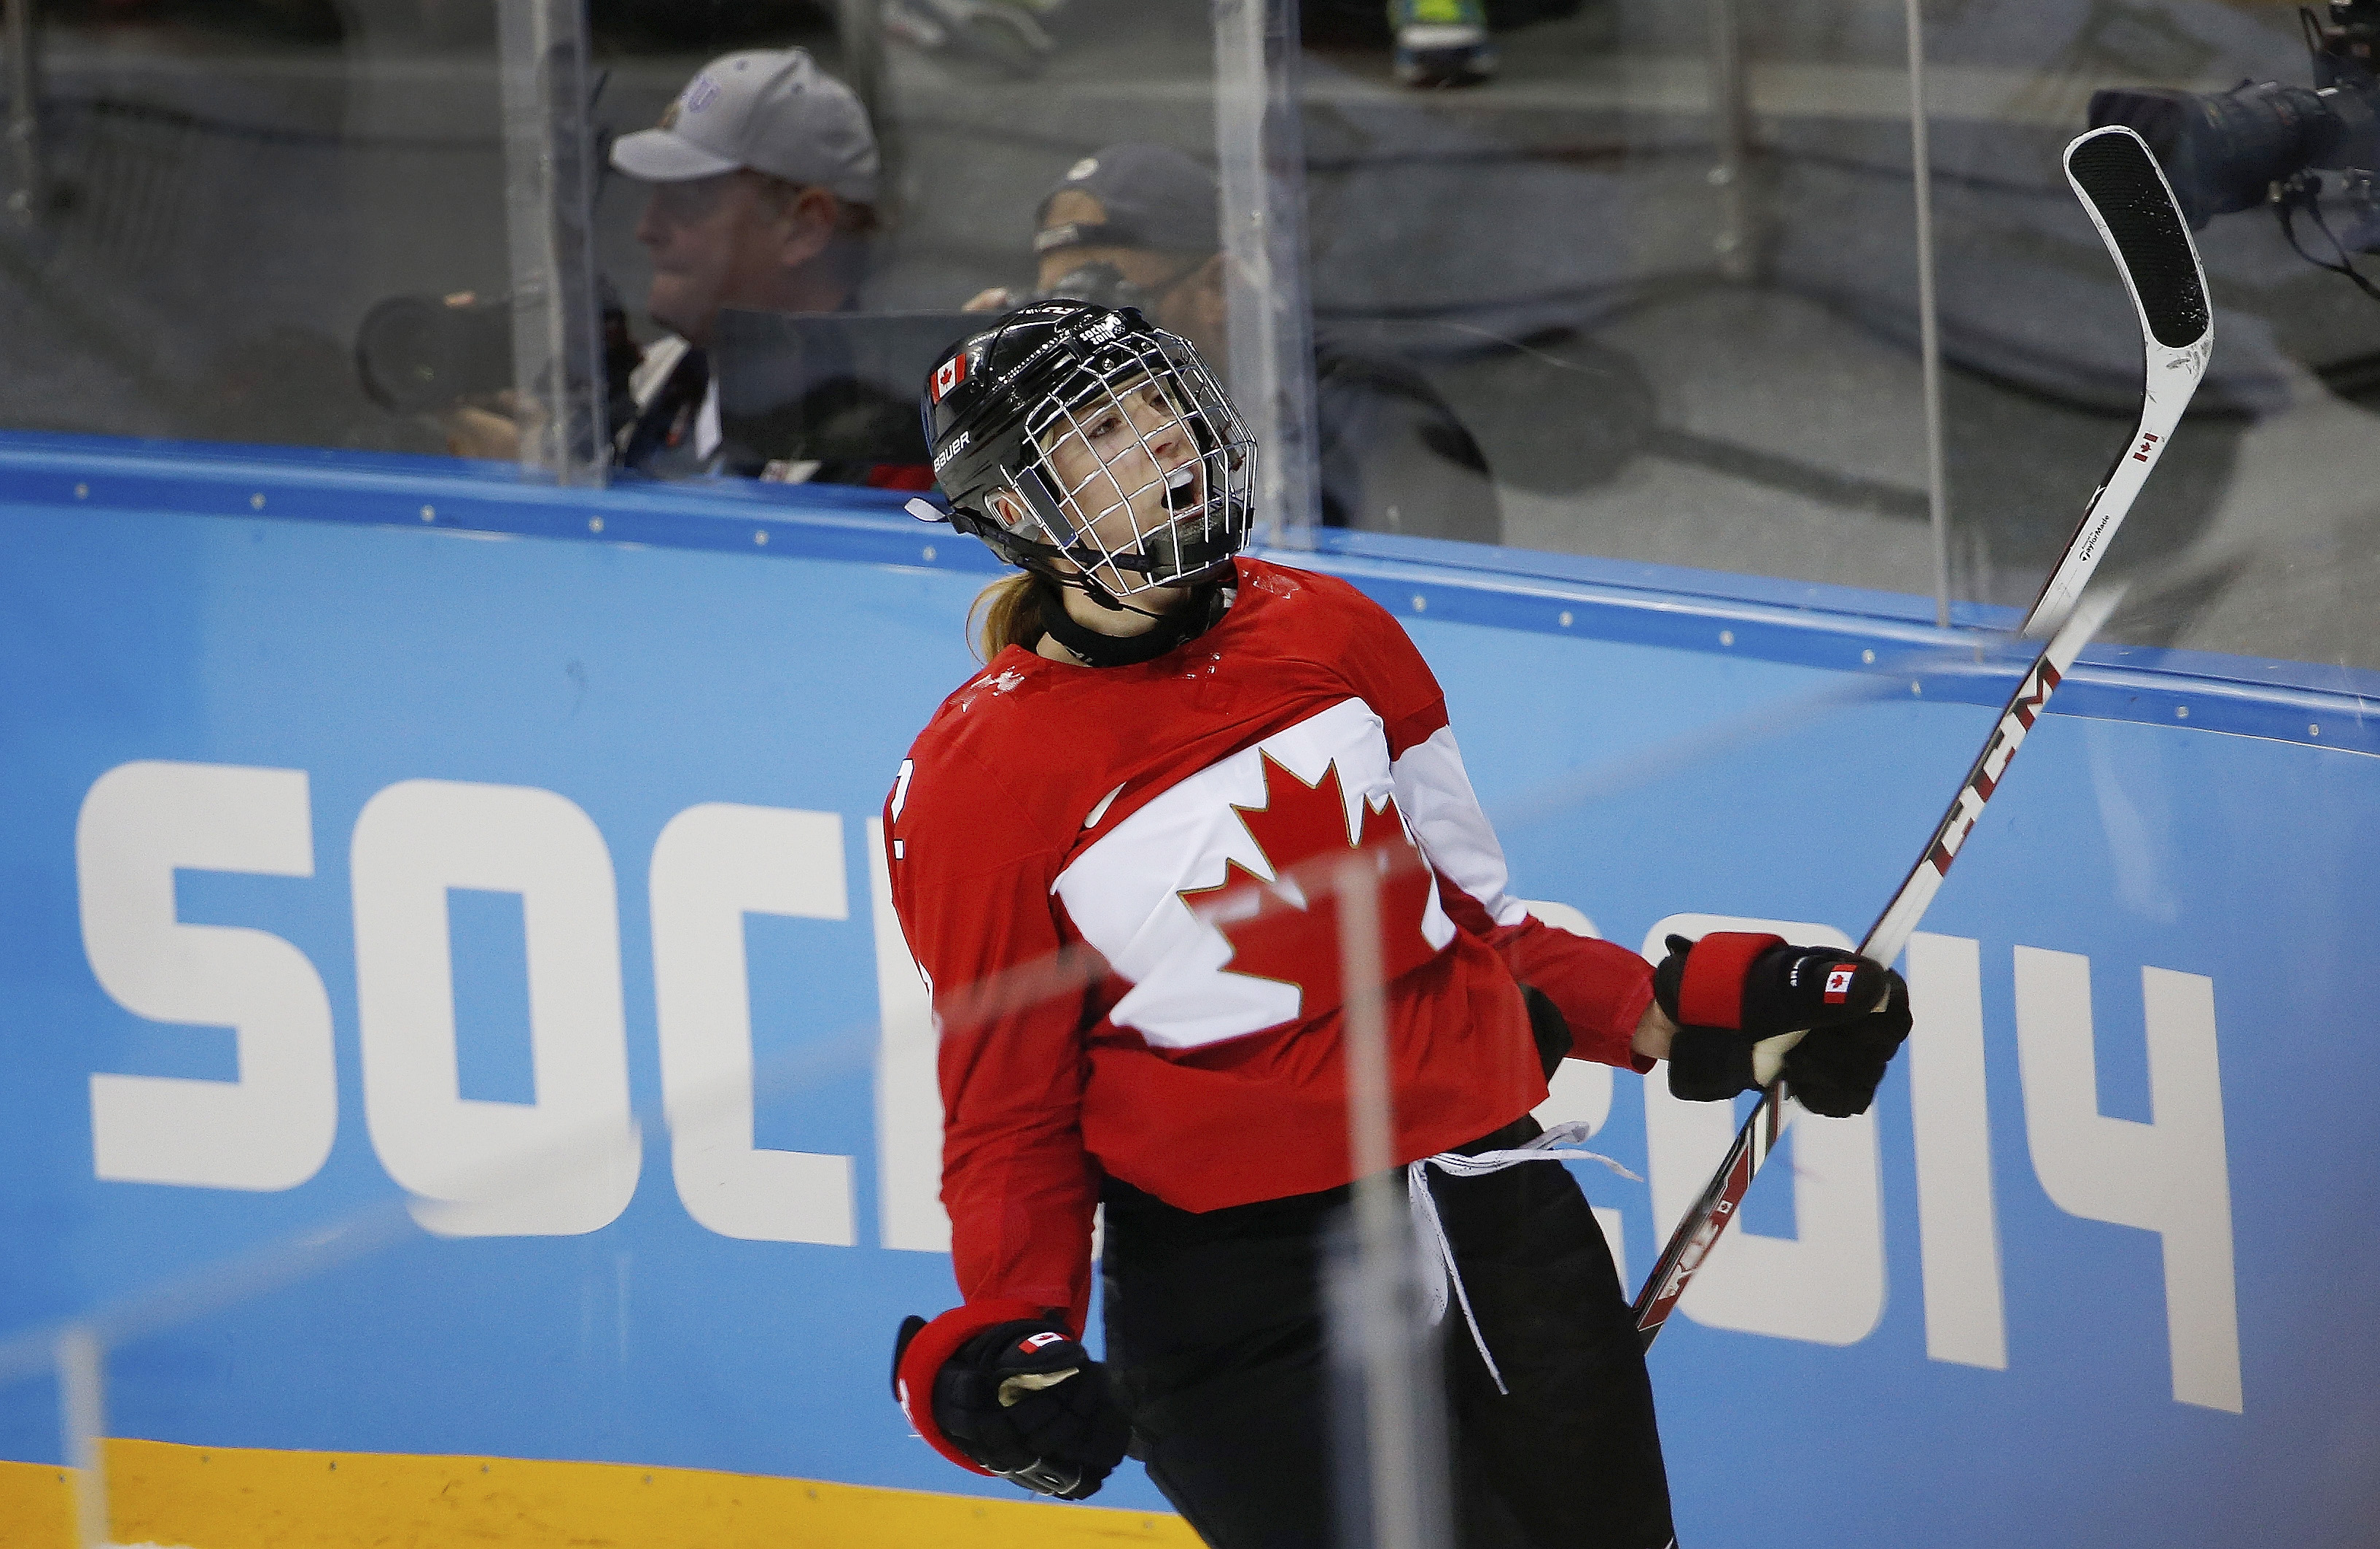 Meghan Agosta-Marciano of Canada celebrates her second goal against the United States during the third period of the 2014 Winter Olympics women's ice hockey game at Shayba Arena, Wednesday, Feb. 12, 2014, in Sochi, Russia. Canada defeated the Unites States 3-2. (AP Photo/Petr David Josek)